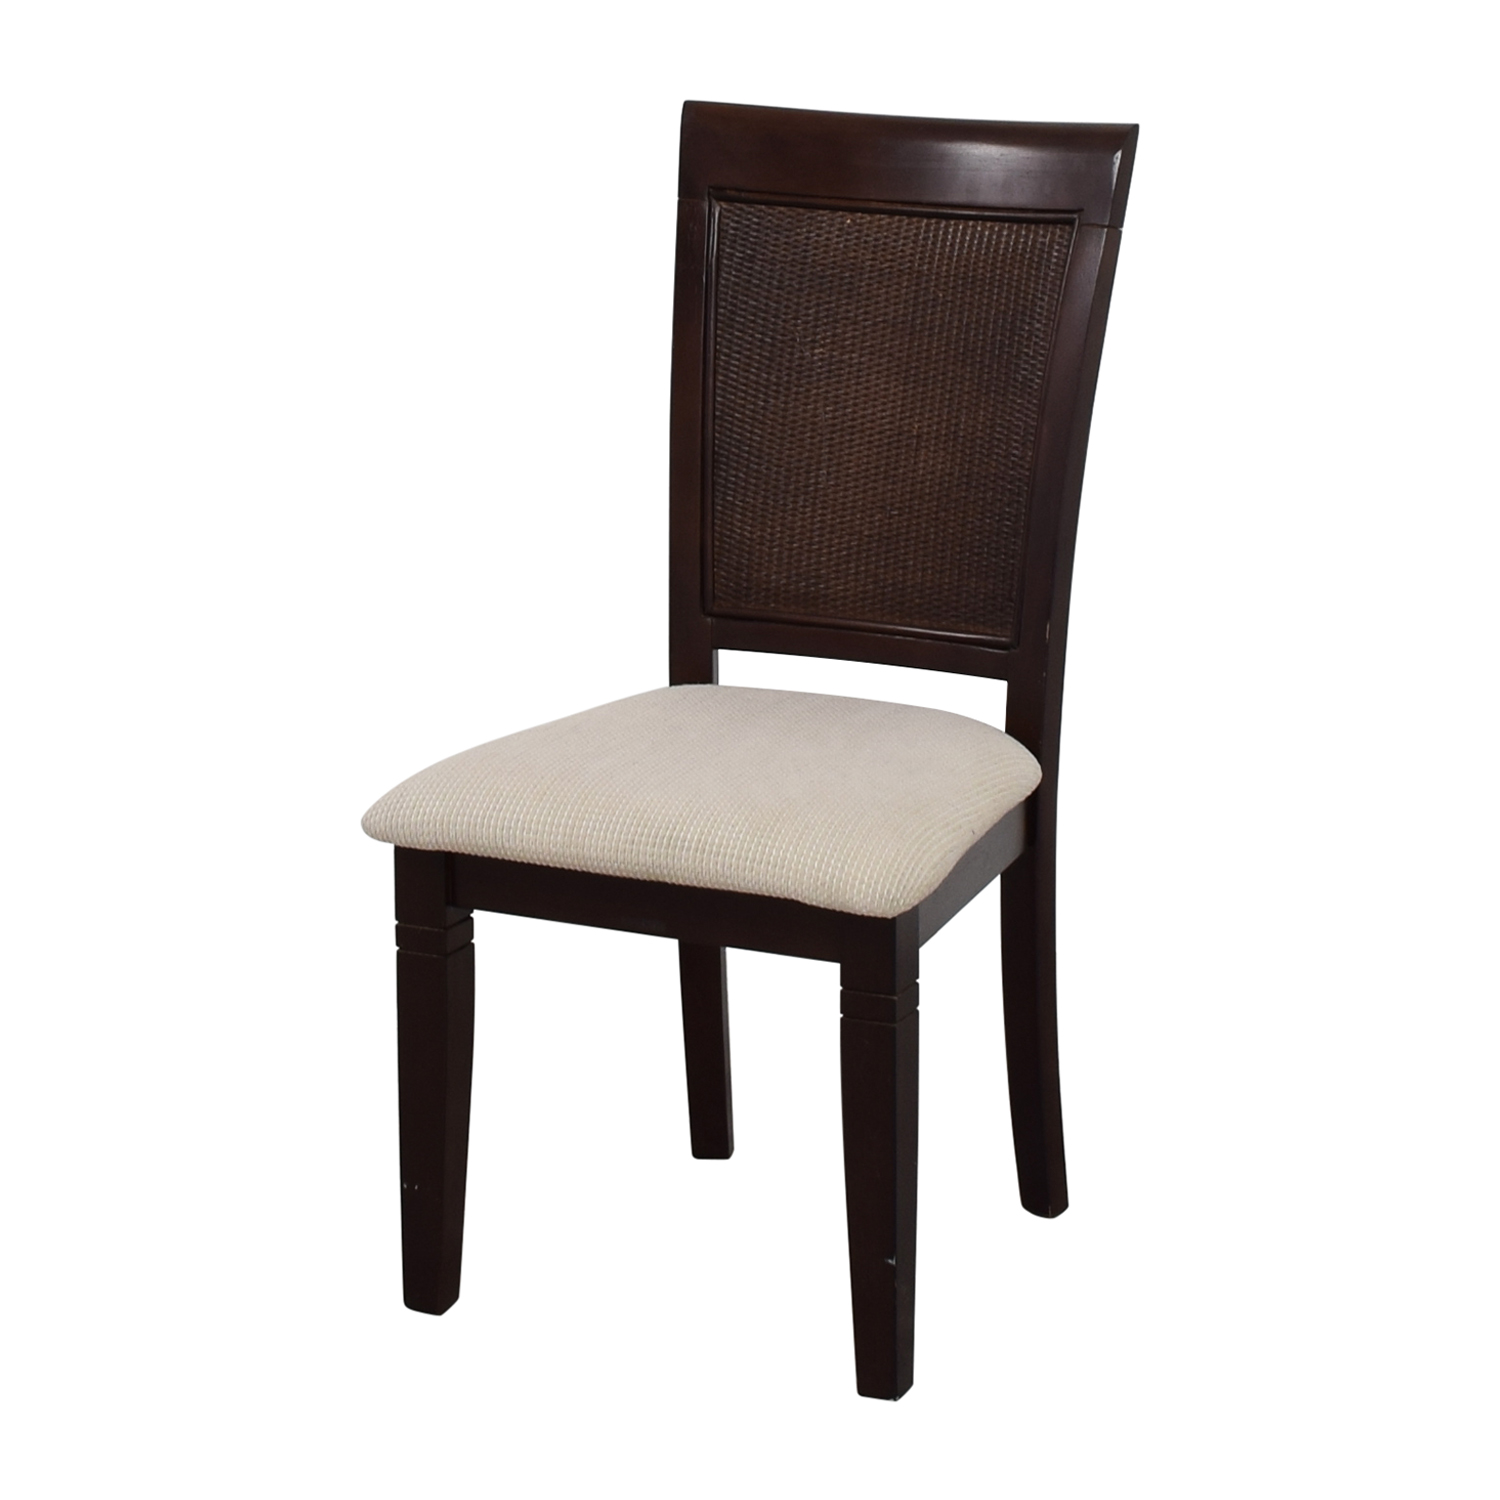 Beige Wood Chair with Padded Seat Chairs